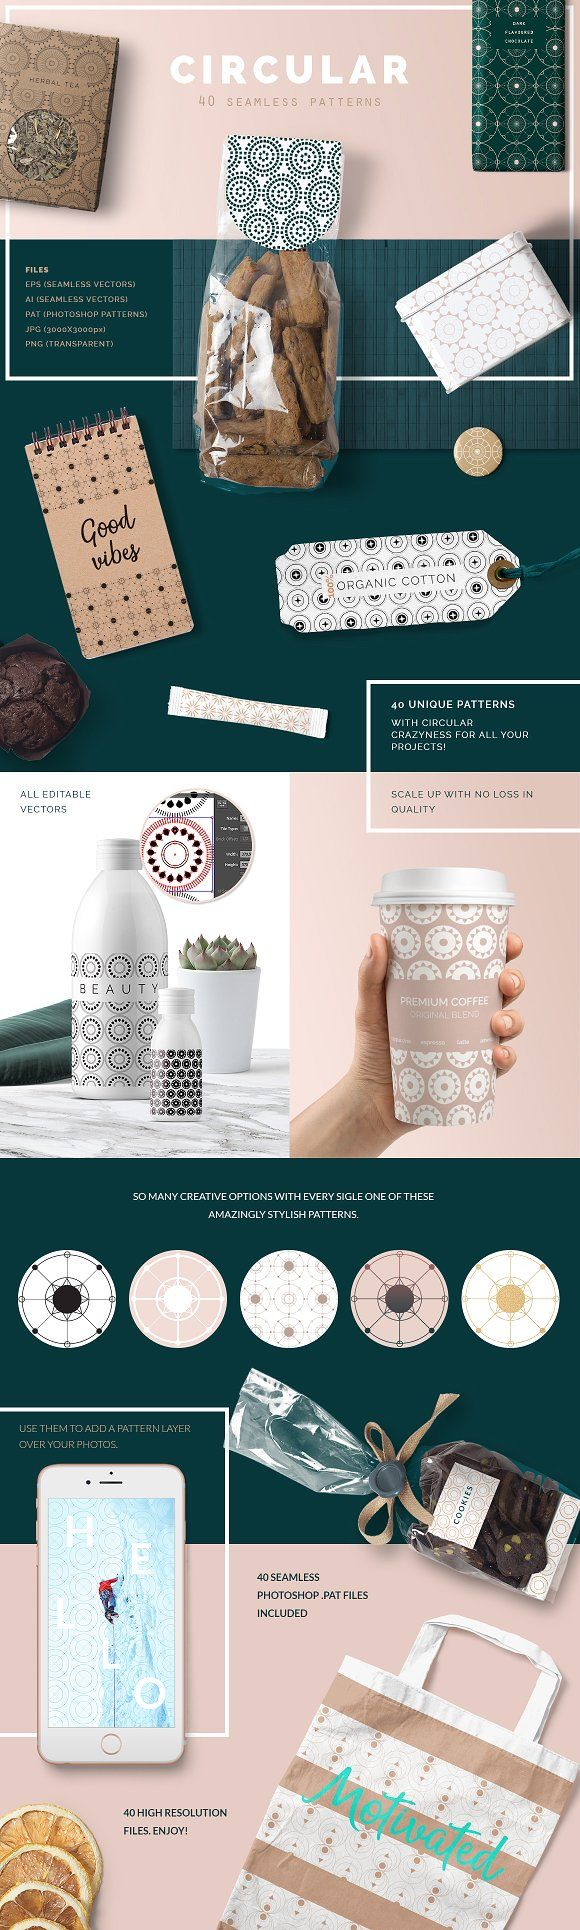 Circular Patterns Set by Youandigraphics on @creativemarket